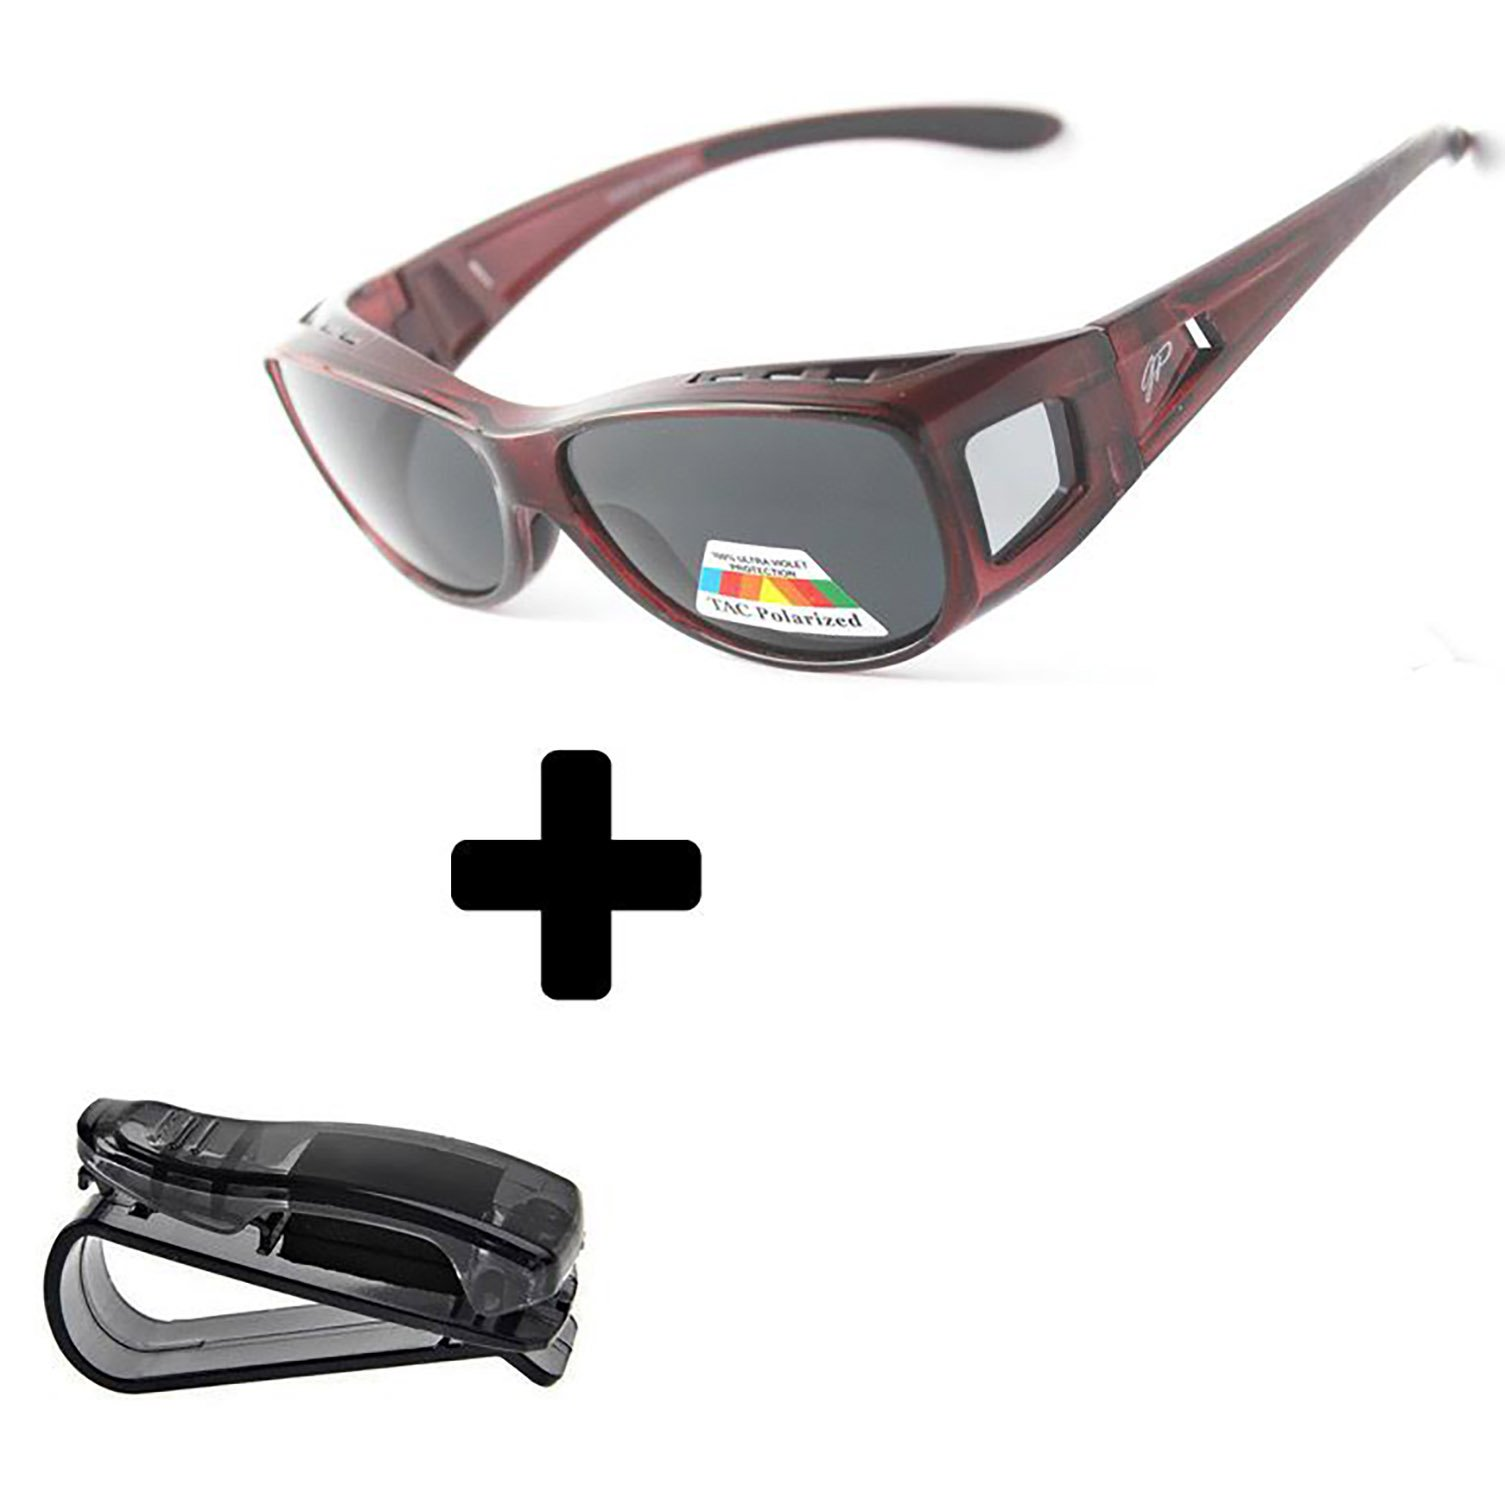 GREAT PICK Fit Over Sunglasses Polarized Sunglasses to Wear Over Glasses plus car holder clip